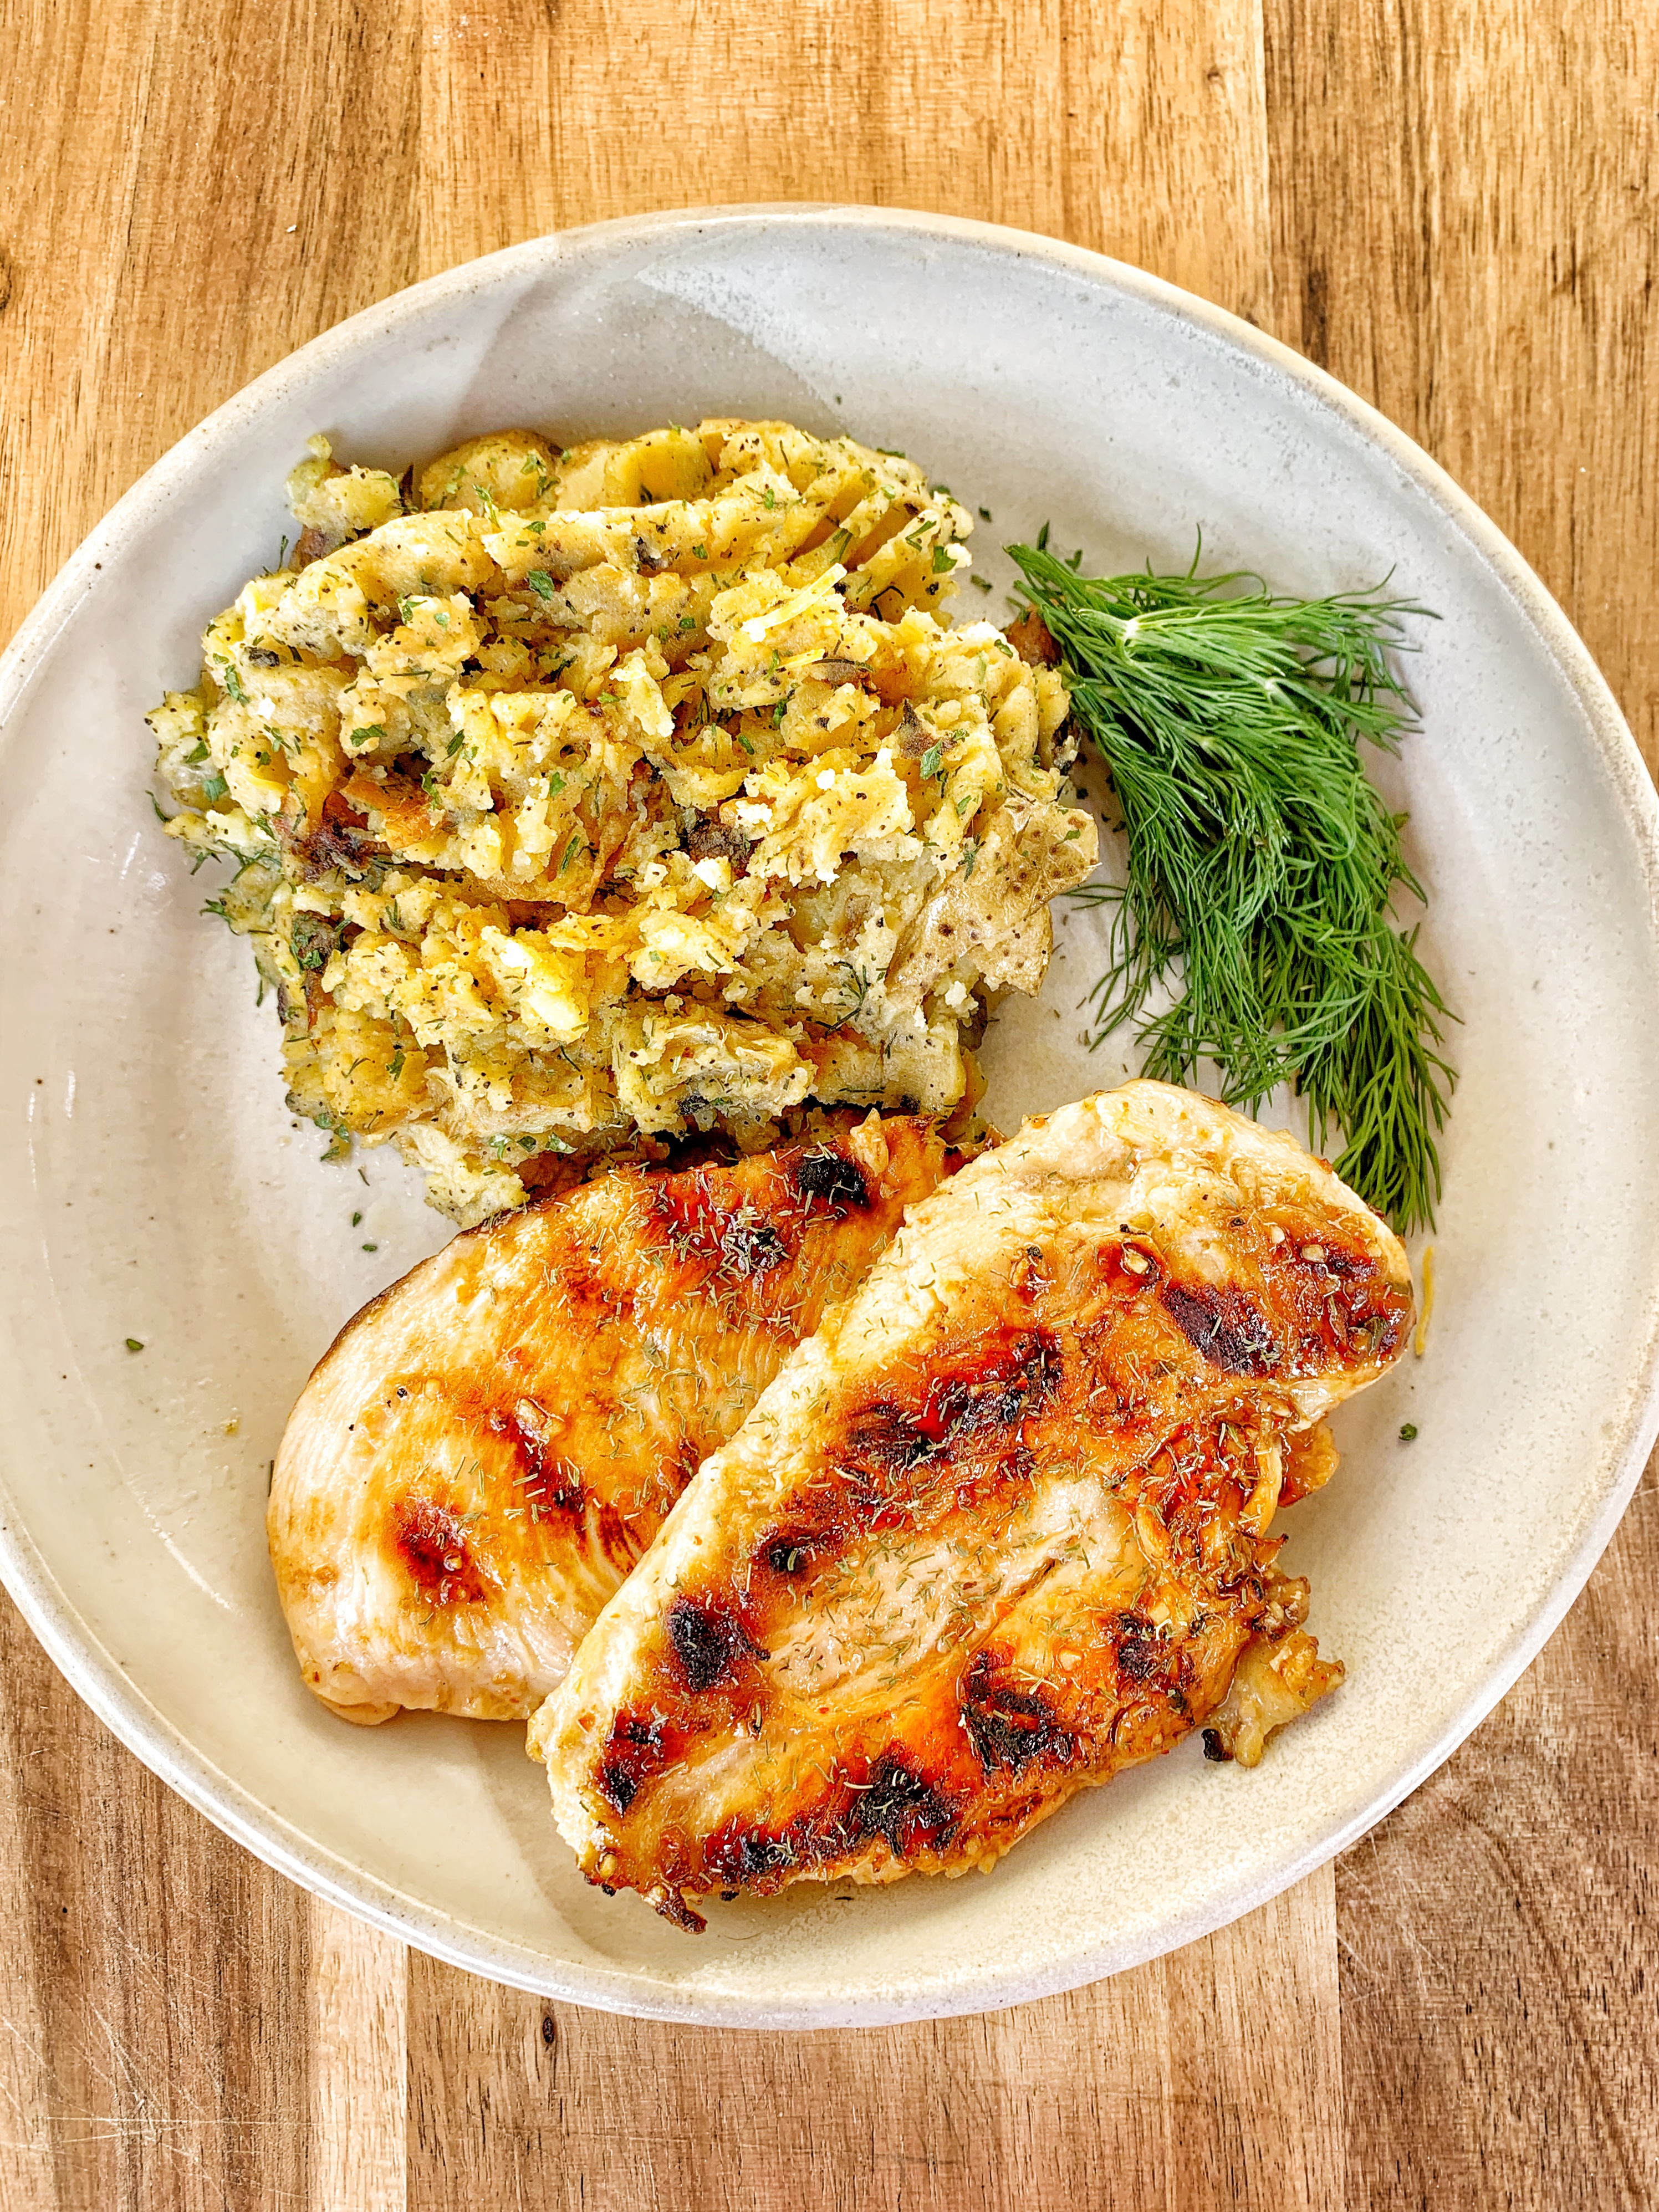 two grilled chicken breasts, mashed potatoes and a sprig of dill